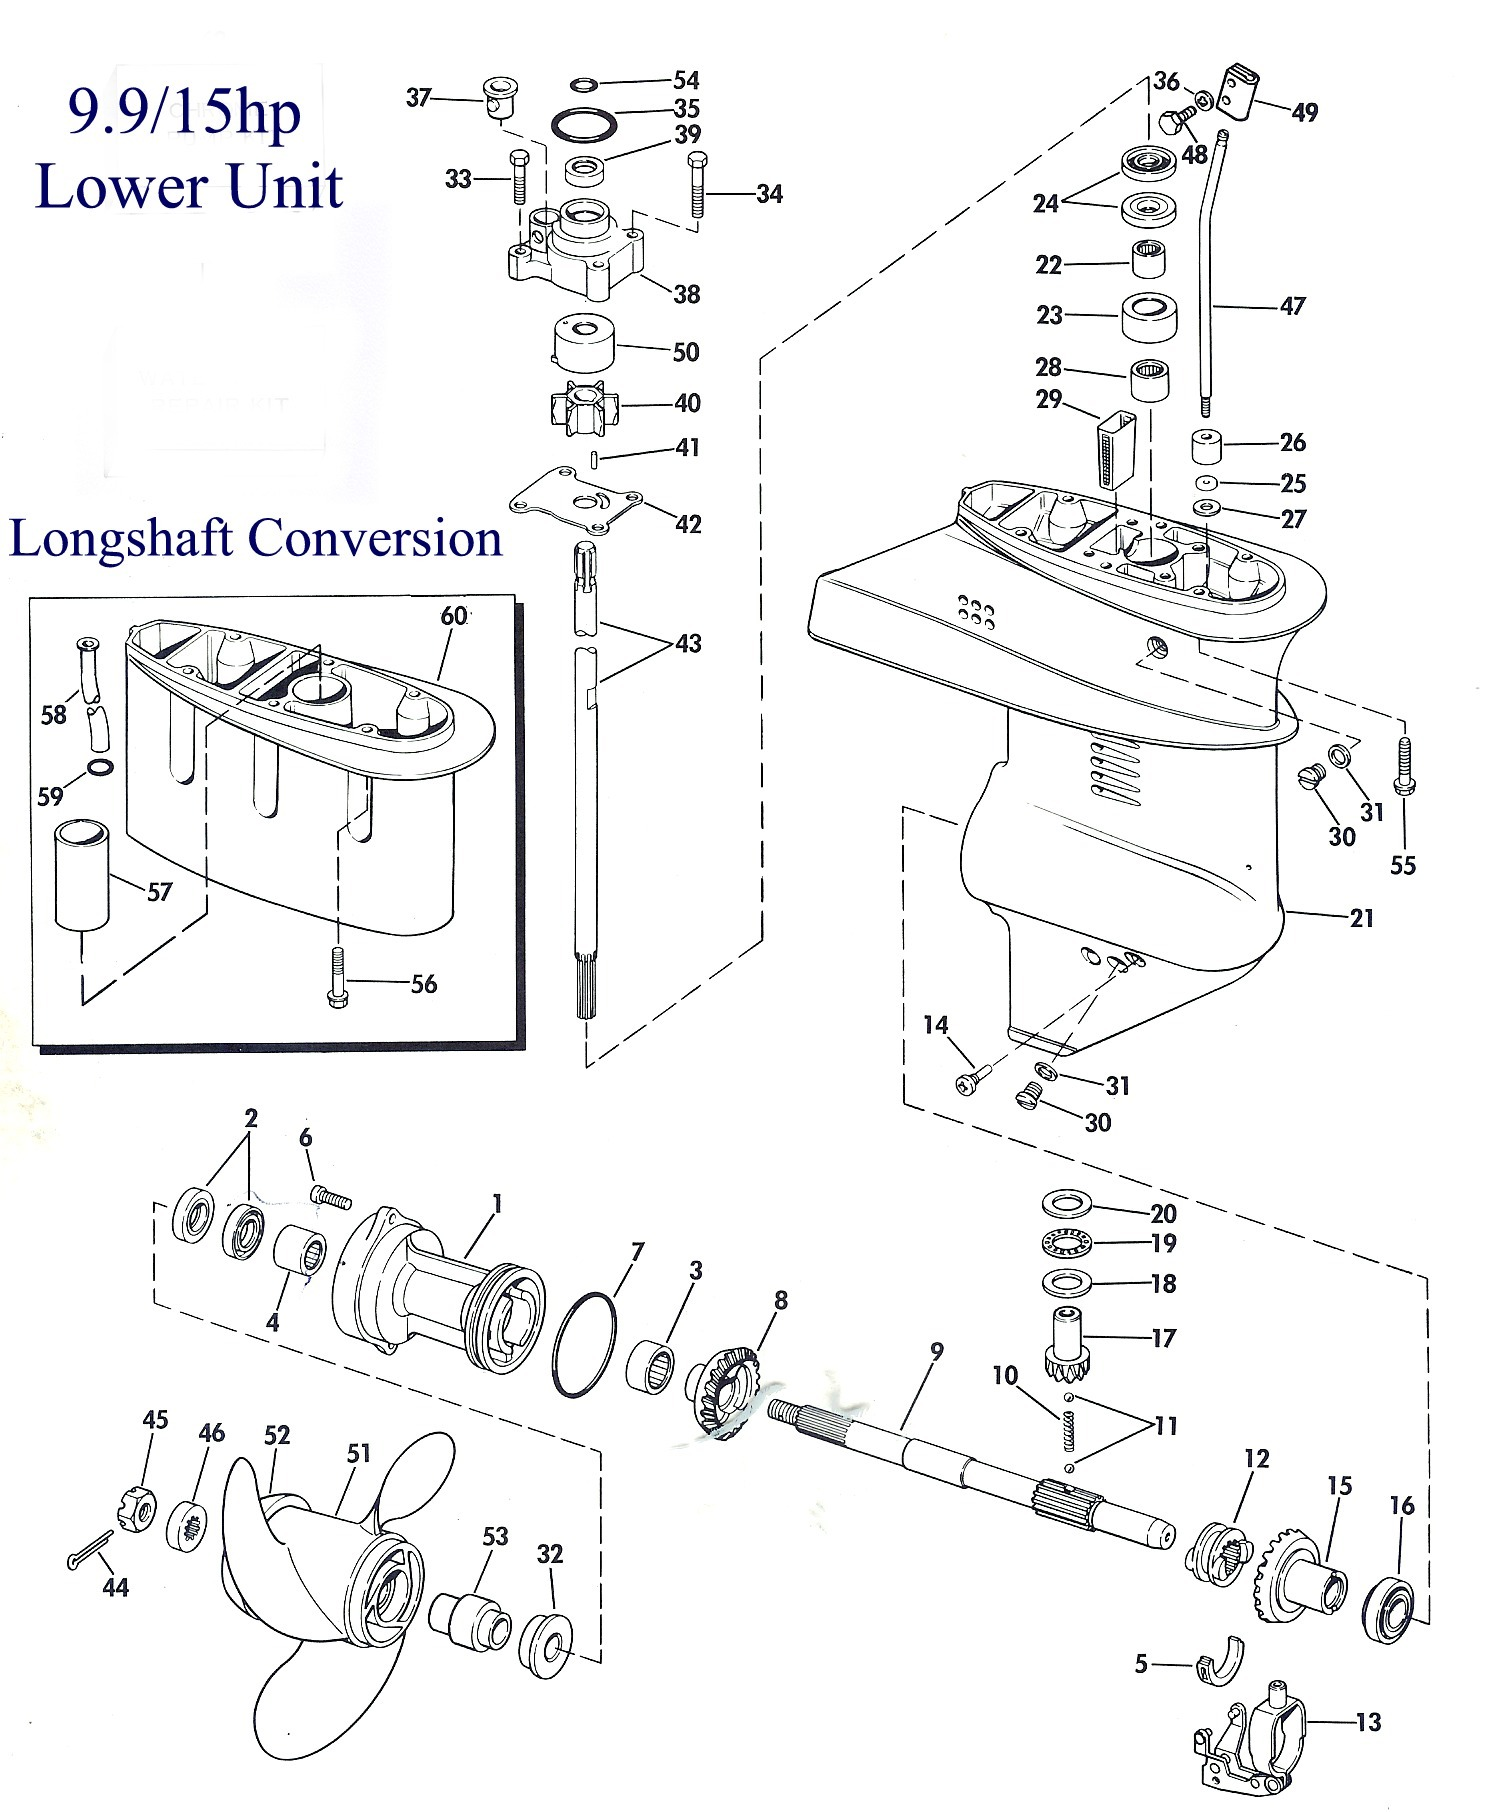 9.9 LU lower unit Johnson Ignition Switch Wiring Diagram at gsmportal.co